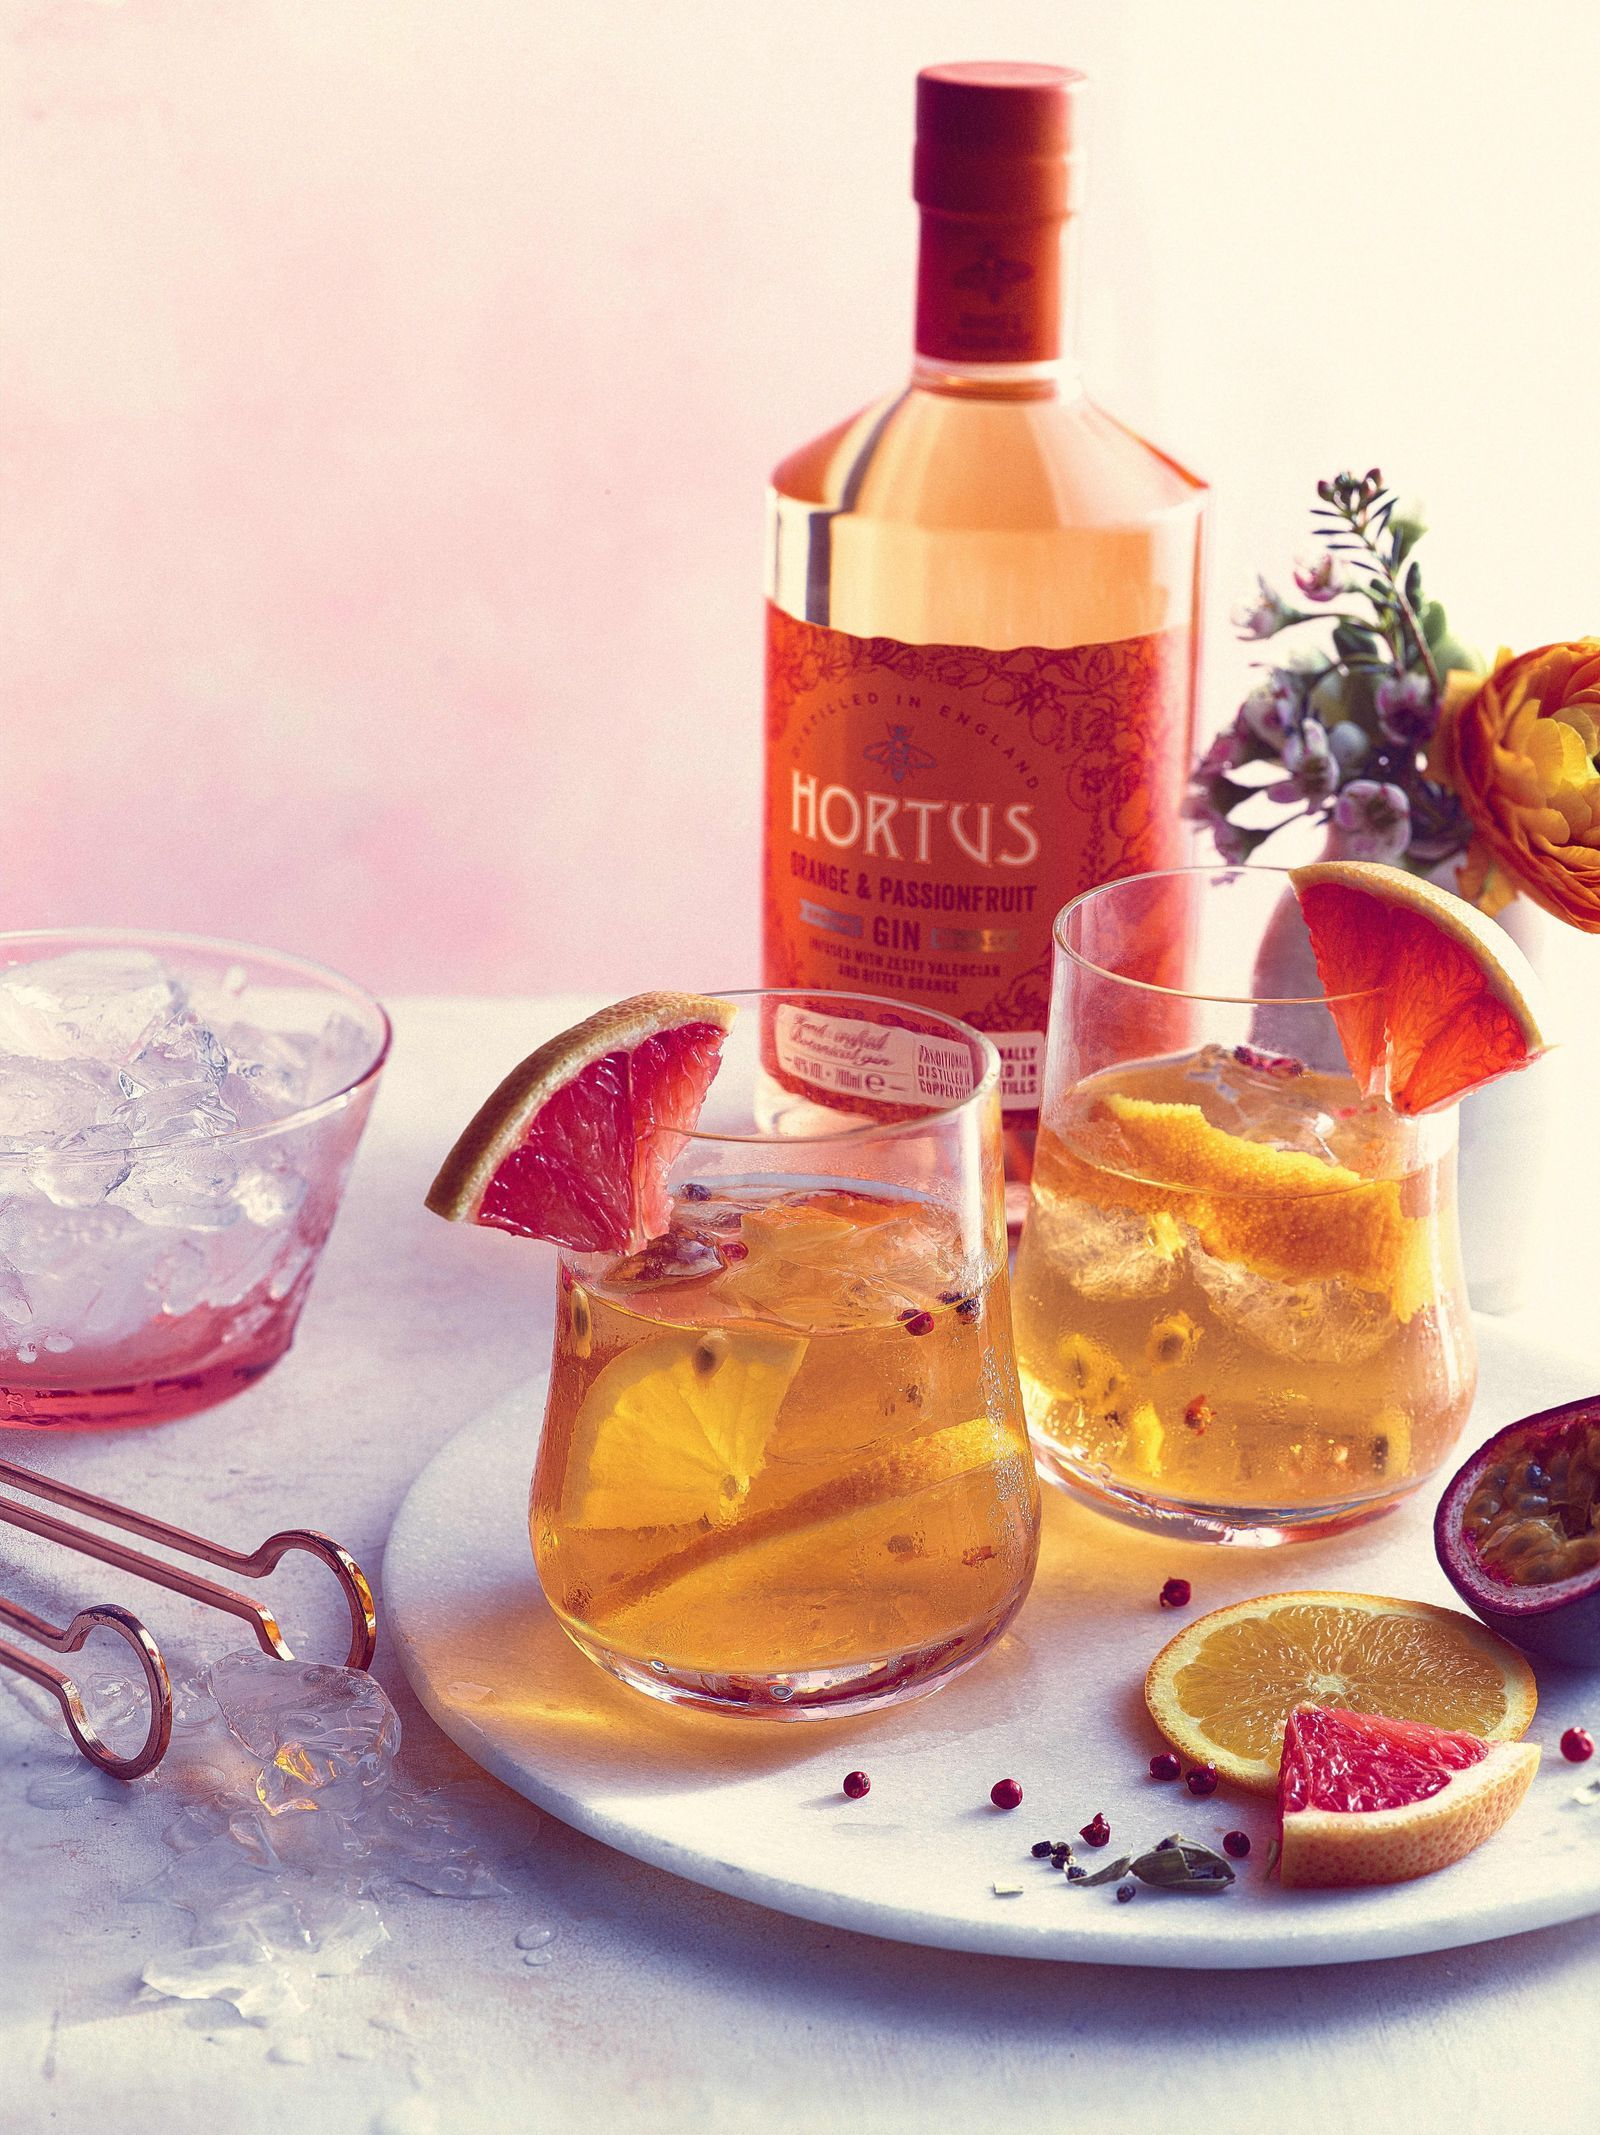 Lidl S New Orange Passionfruit Gin Sounds So Delicious In 2020 Gin Flavoured Gin Photographing Food